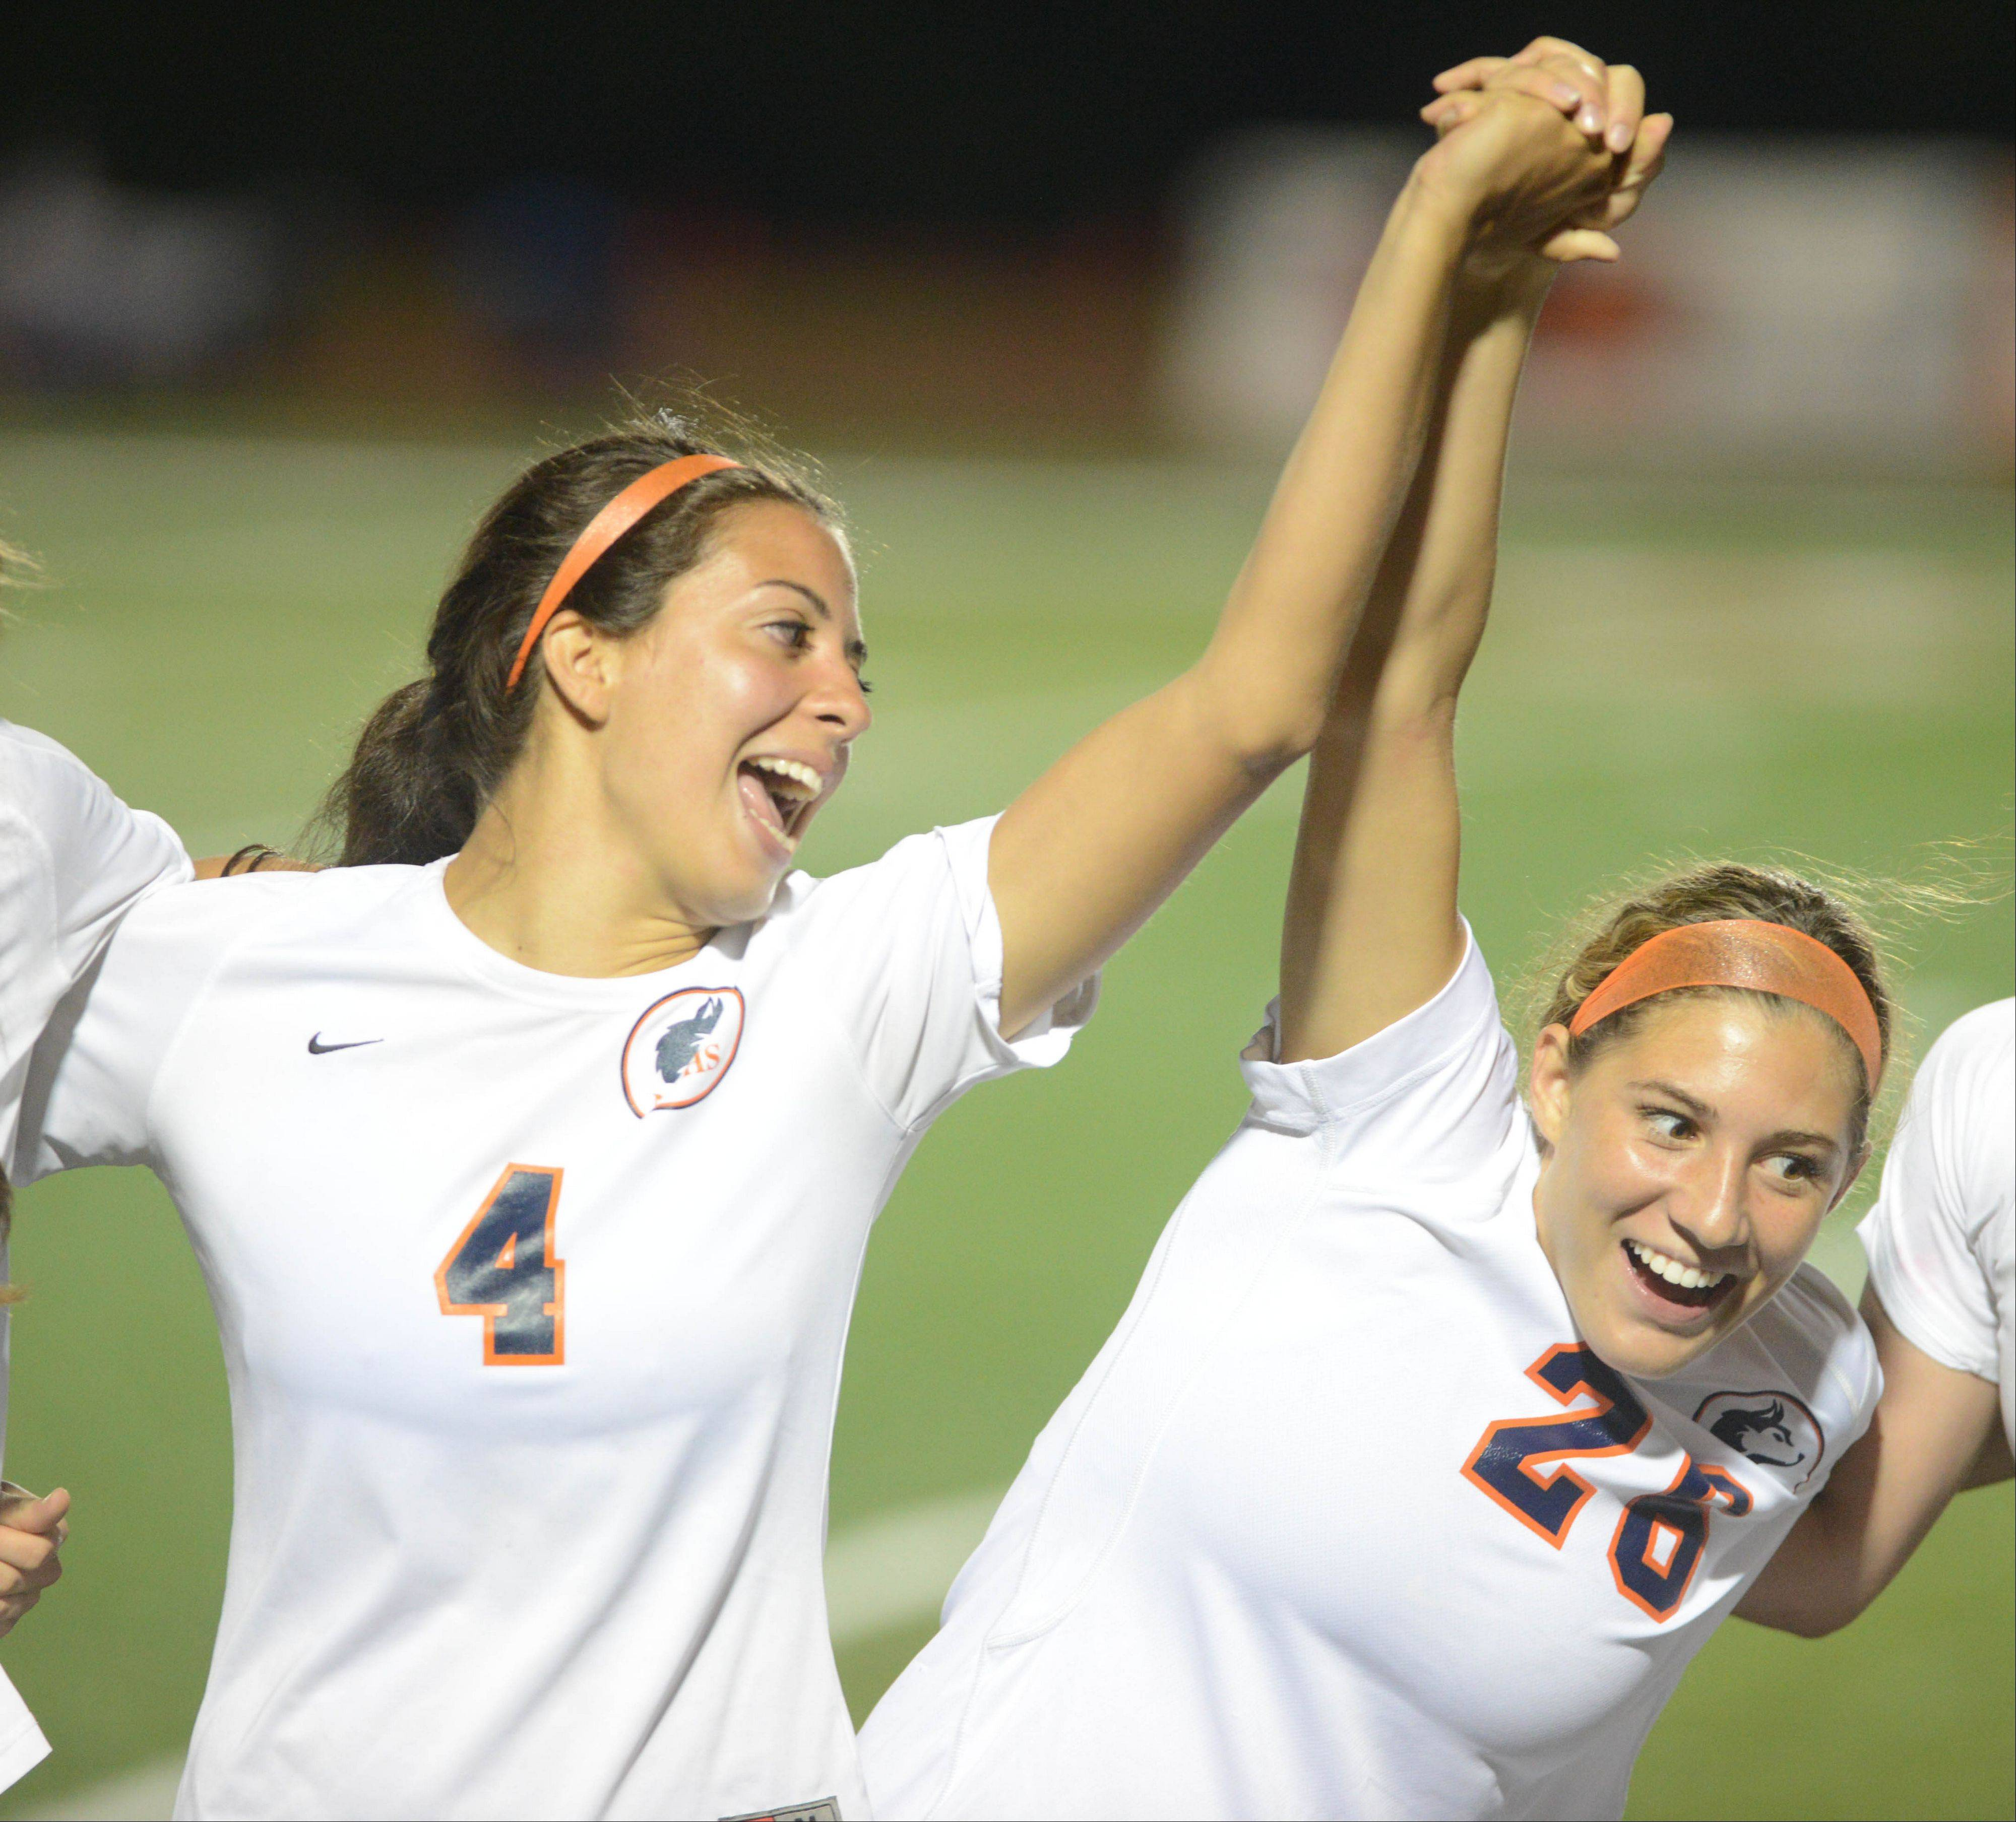 Caroline Rico,left, and Caroline Casas of Naperville North celebrate their big win at the Class 3A girls soccer championship match in Naperville Saturday.